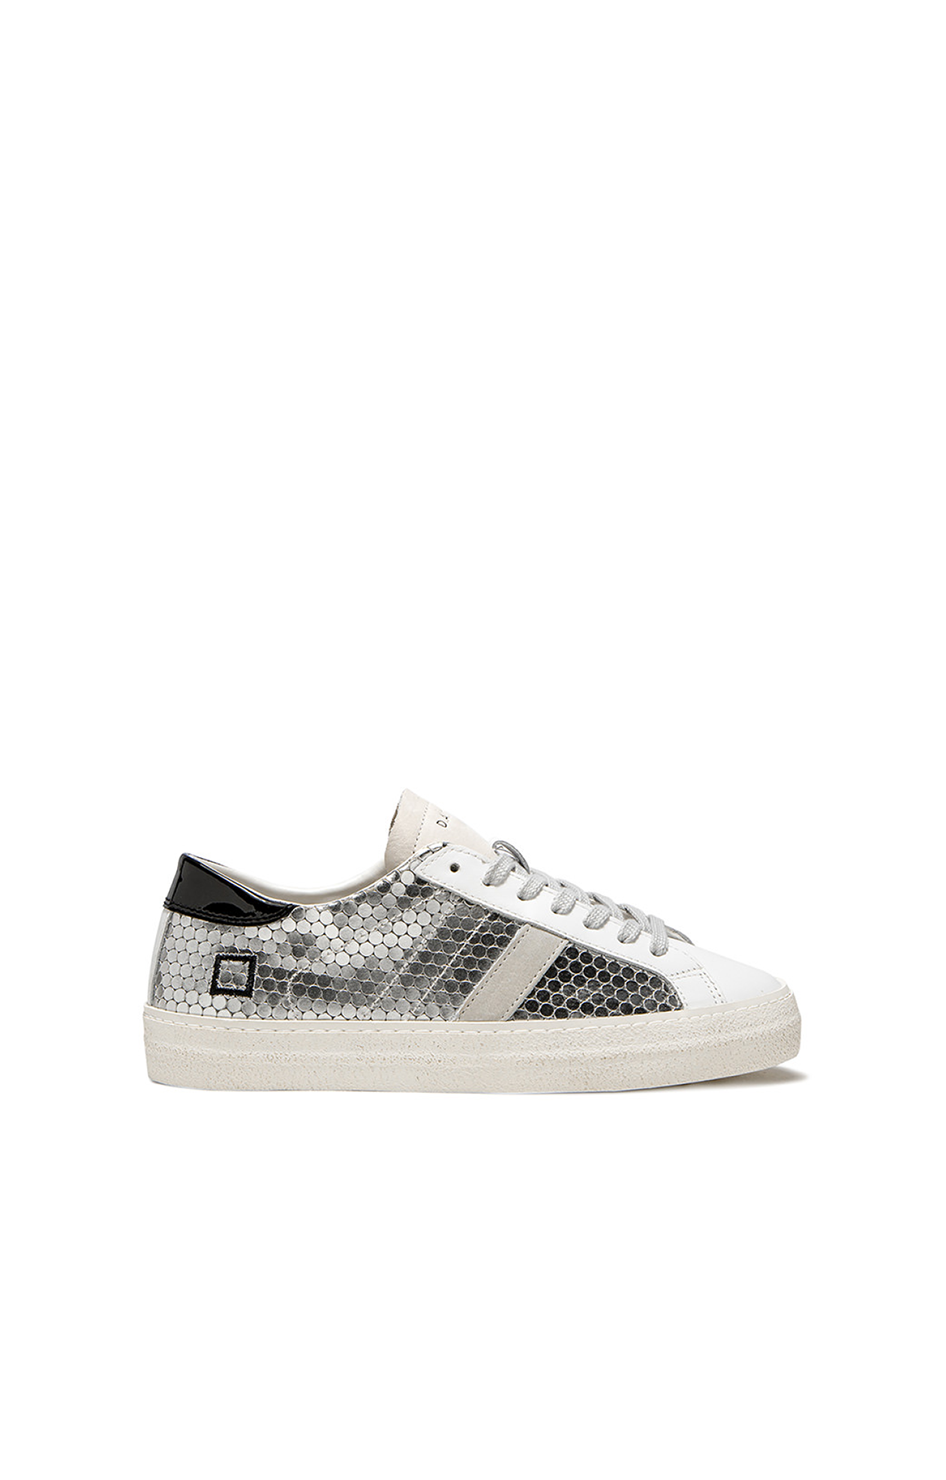 Hill Low Pong Sneaker - Silver